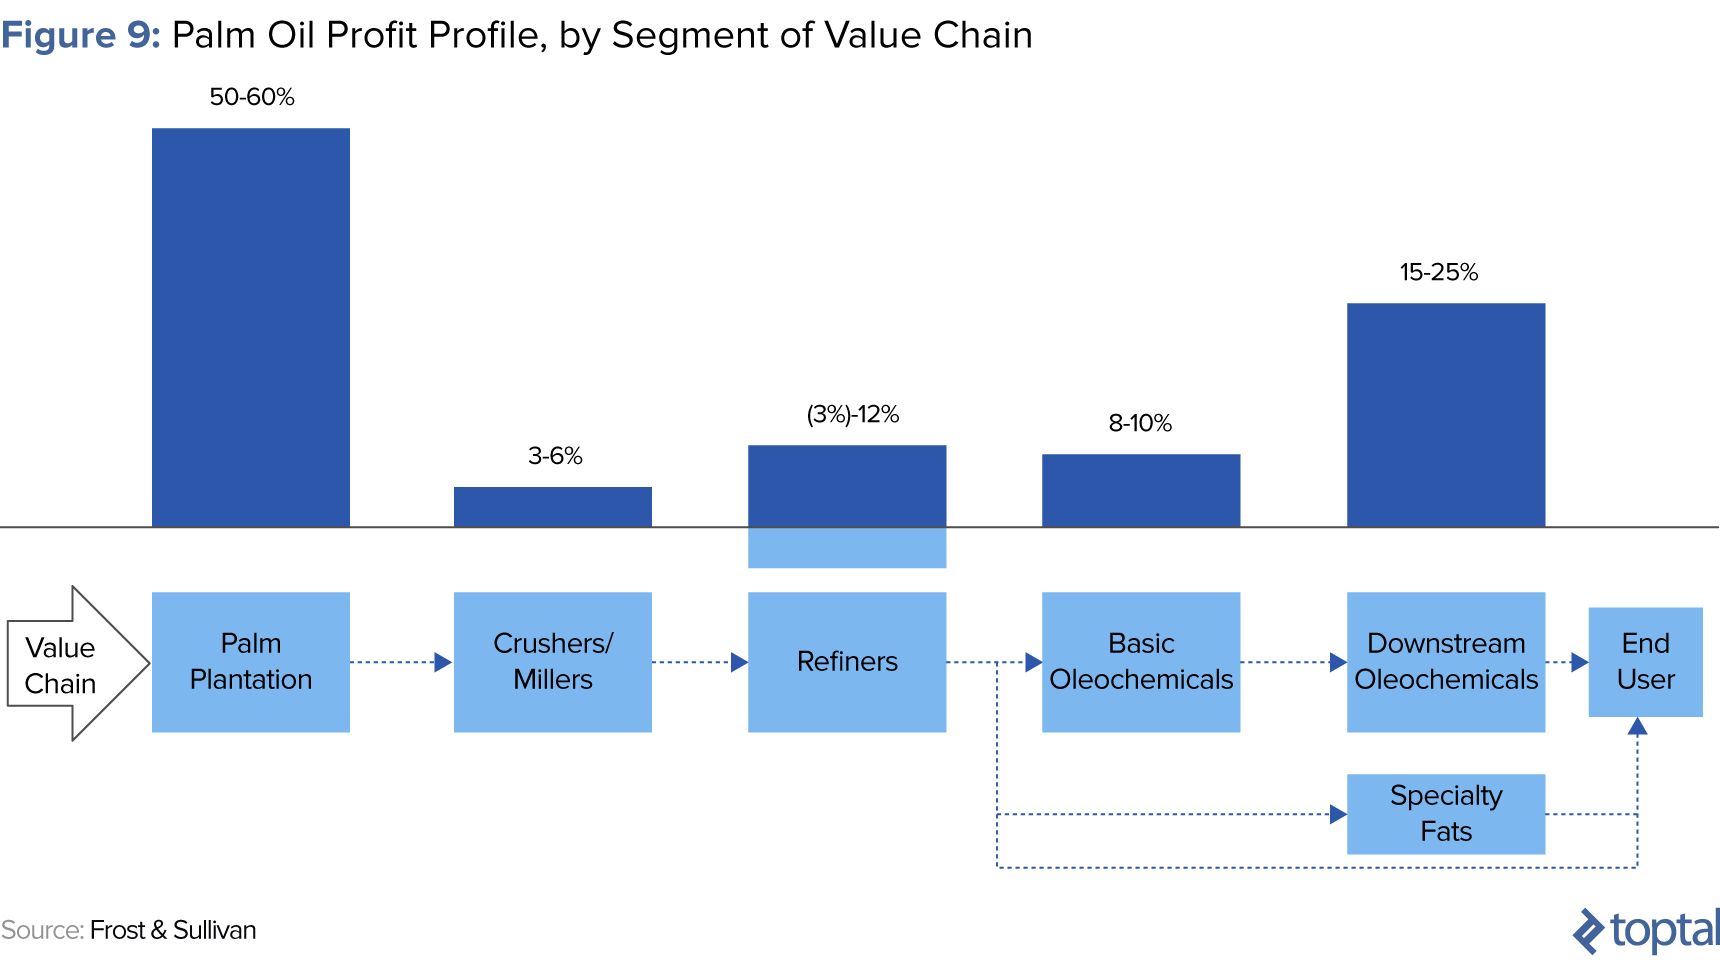 Figure 9: Palm Oil Profit Profile, by Segment of Value Chain